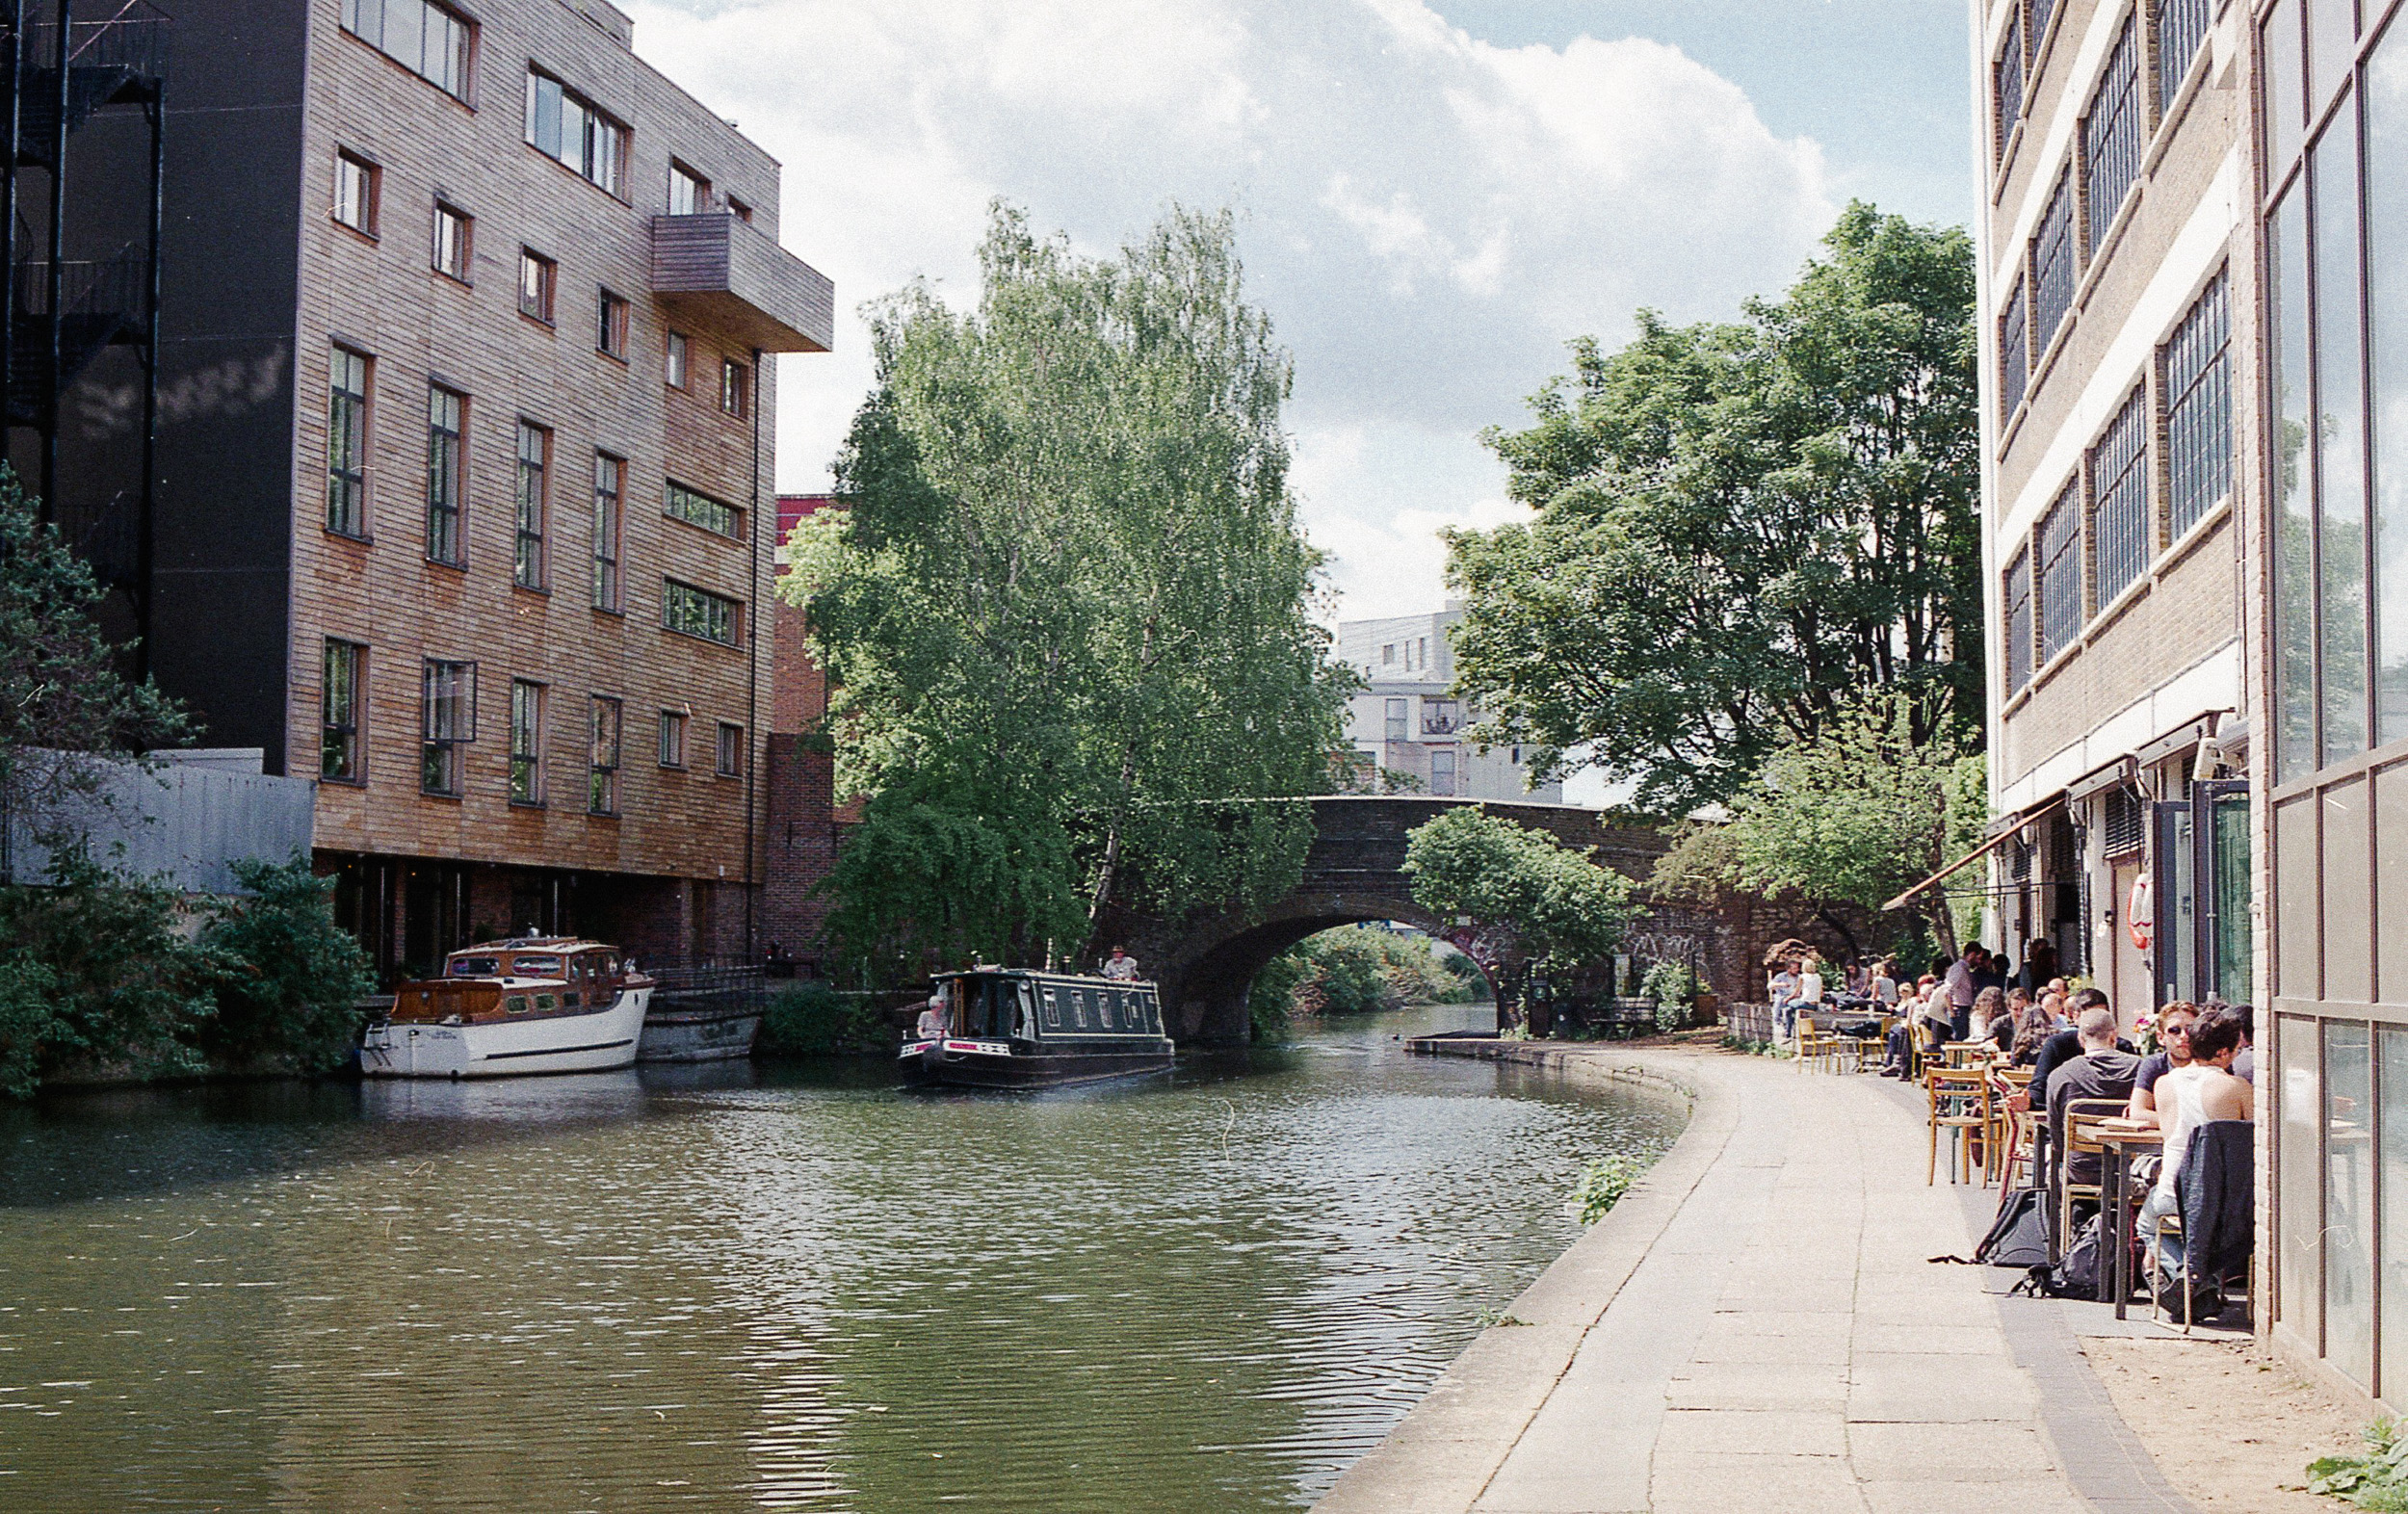 Towpath Cafe, Regent's Canal London. (c) Leonie Wise